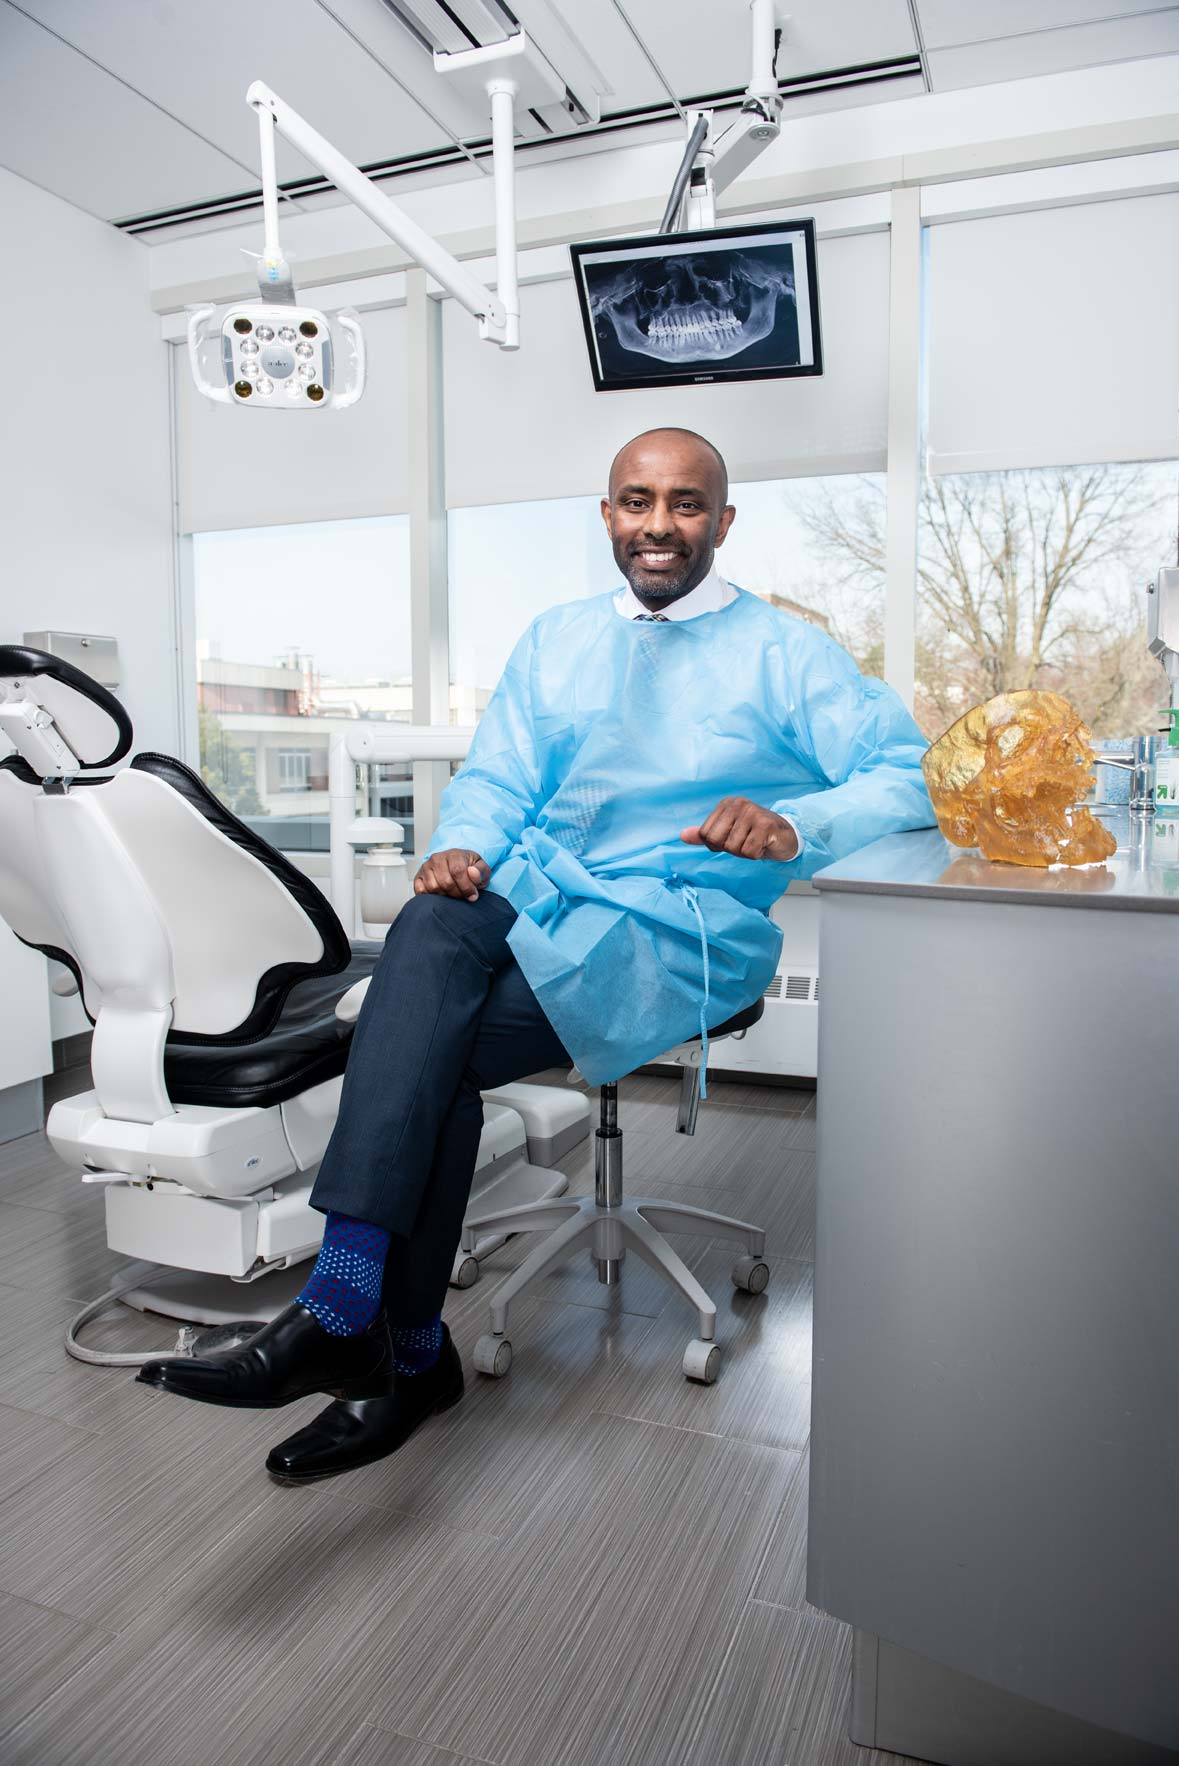 Dr. Ghassan Sinada, Top Dentist, photographed for Baltimore Magazine